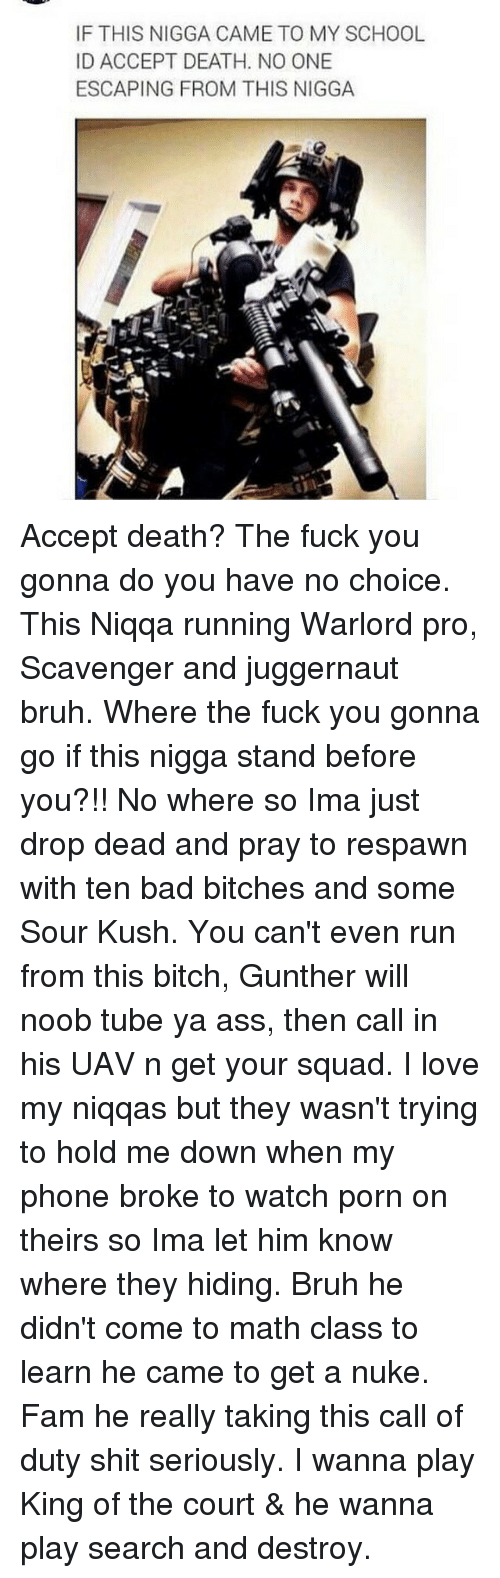 Ass, Bad, and Bitch: IF THIS NIGGA CAME TO MY SCHOOL  ID ACCEPT DEATH. NO ONE  ESCAPING FROM THIS NIGGA Accept death? The fuck you gonna do you have no choice. This Niqqa running Warlord pro, Scavenger and juggernaut bruh. Where the fuck you gonna go if this nigga stand before you?!! No where so Ima just drop dead and pray to respawn with ten bad bitches and some Sour Kush. You can't even run from this bitch, Gunther will noob tube ya ass, then call in his UAV n get your squad. I love my niqqas but they wasn't trying to hold me down when my phone broke to watch porn on theirs so Ima let him know where they hiding. Bruh he didn't come to math class to learn he came to get a nuke. Fam he really taking this call of duty shit seriously. I wanna play King of the court & he wanna play search and destroy.